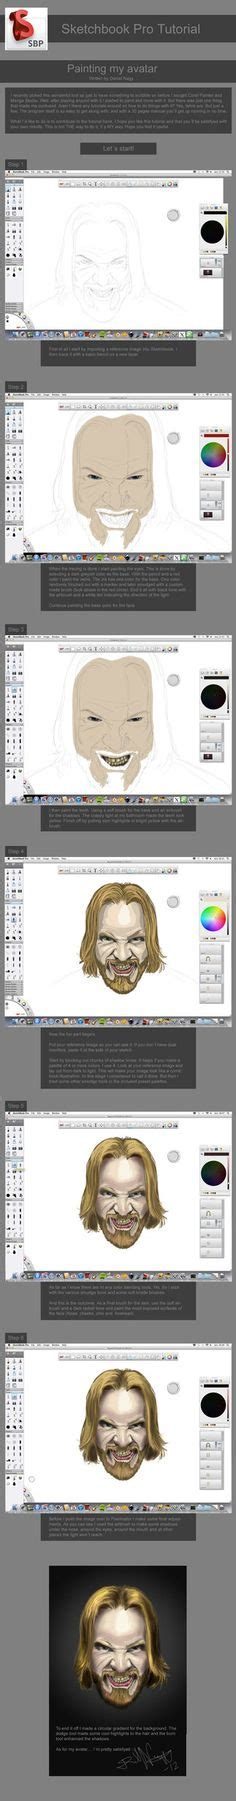 sketchbook pro tutorial books raul s manga girl following digital tutors tutorial on